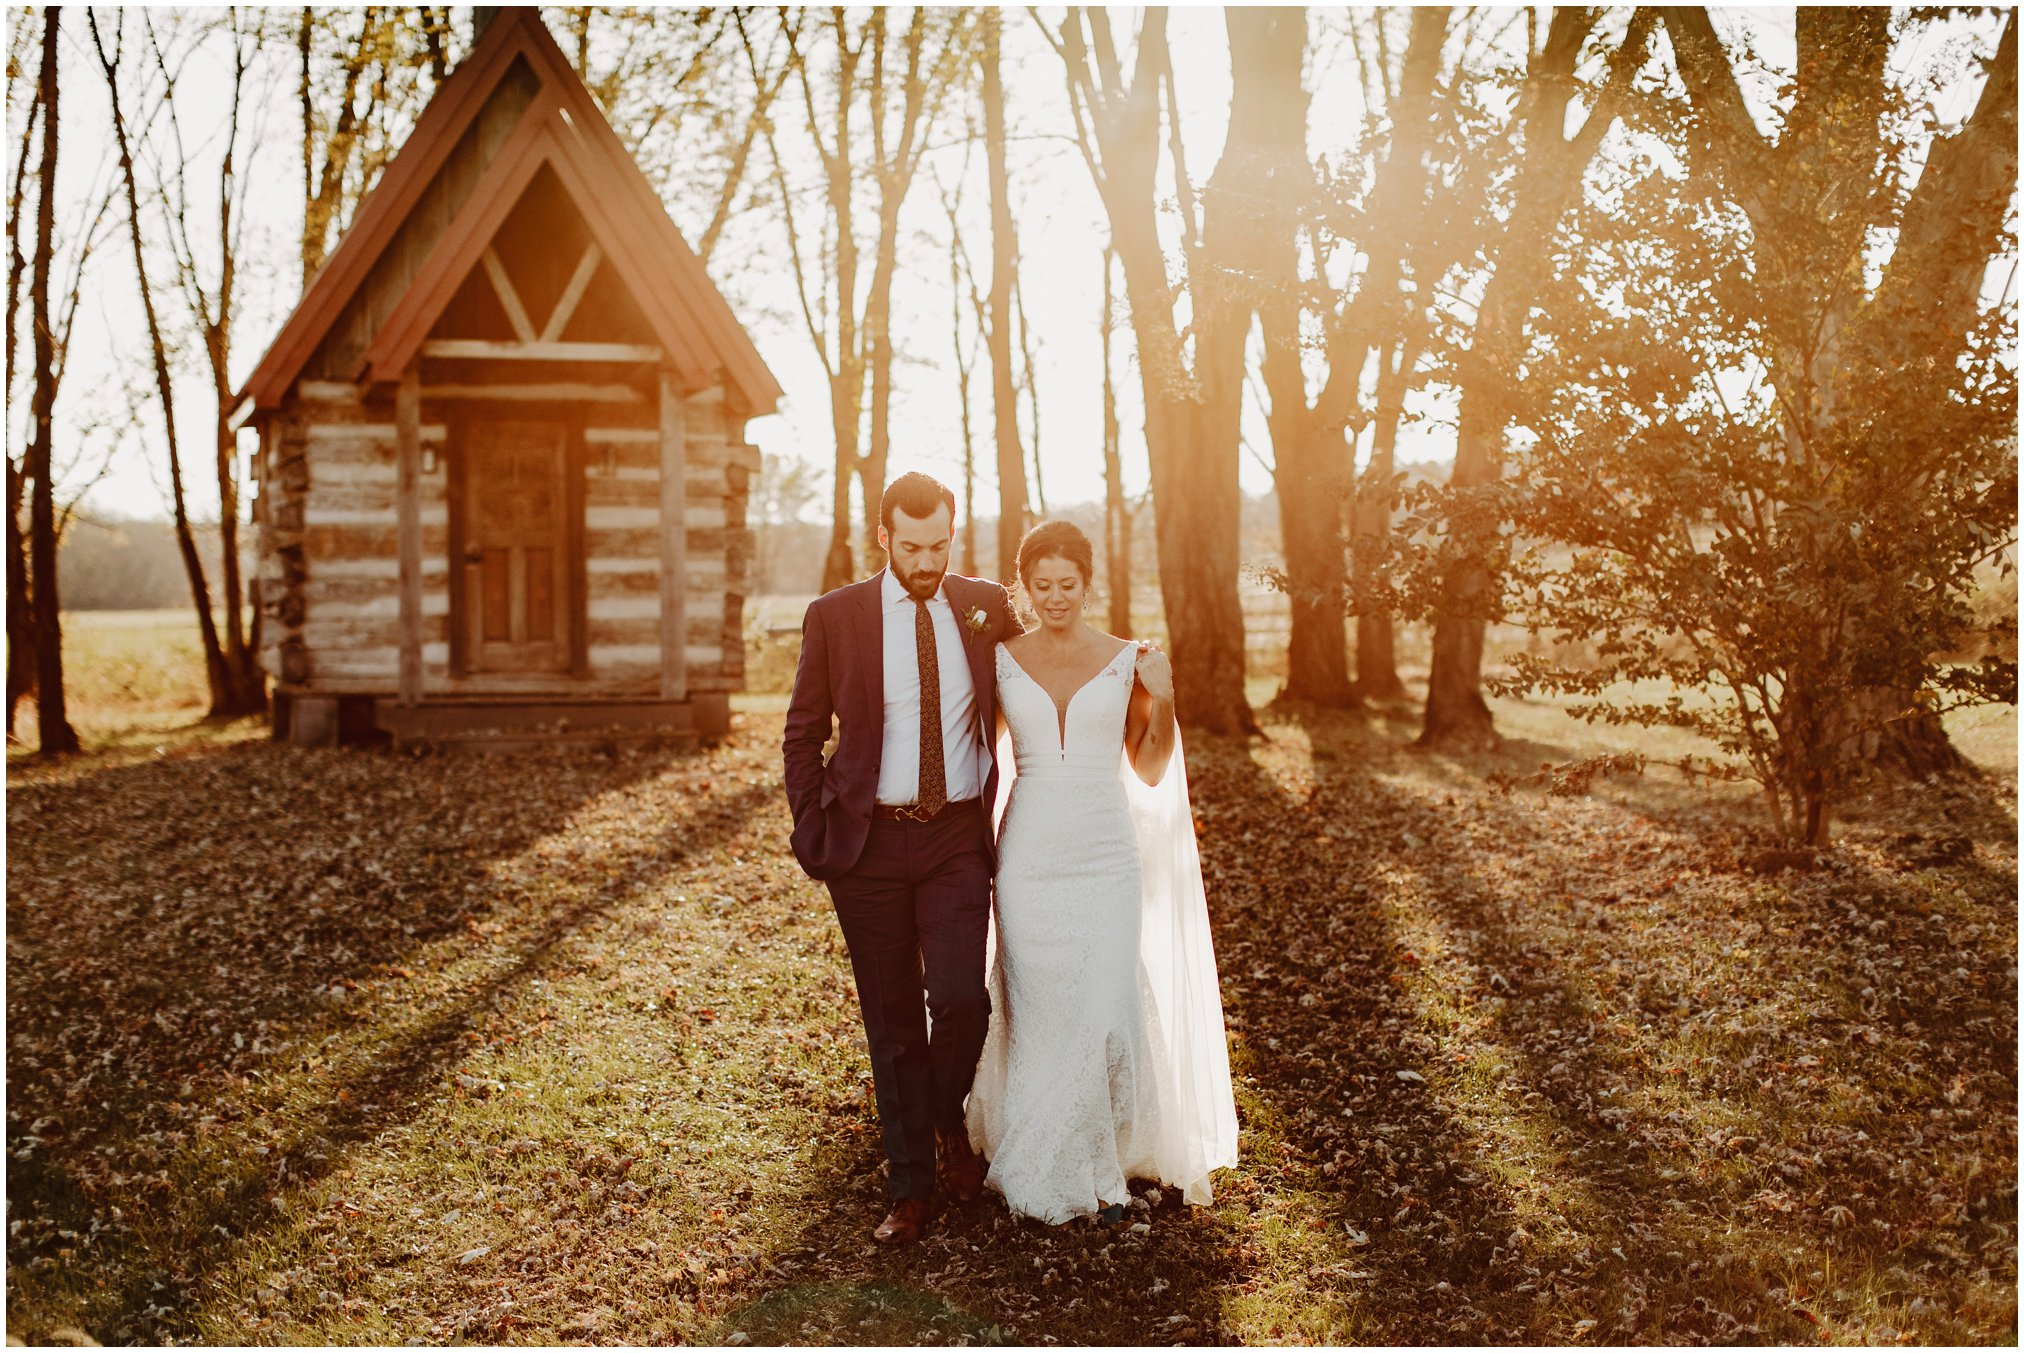 Sunset wedding pictures with cabin